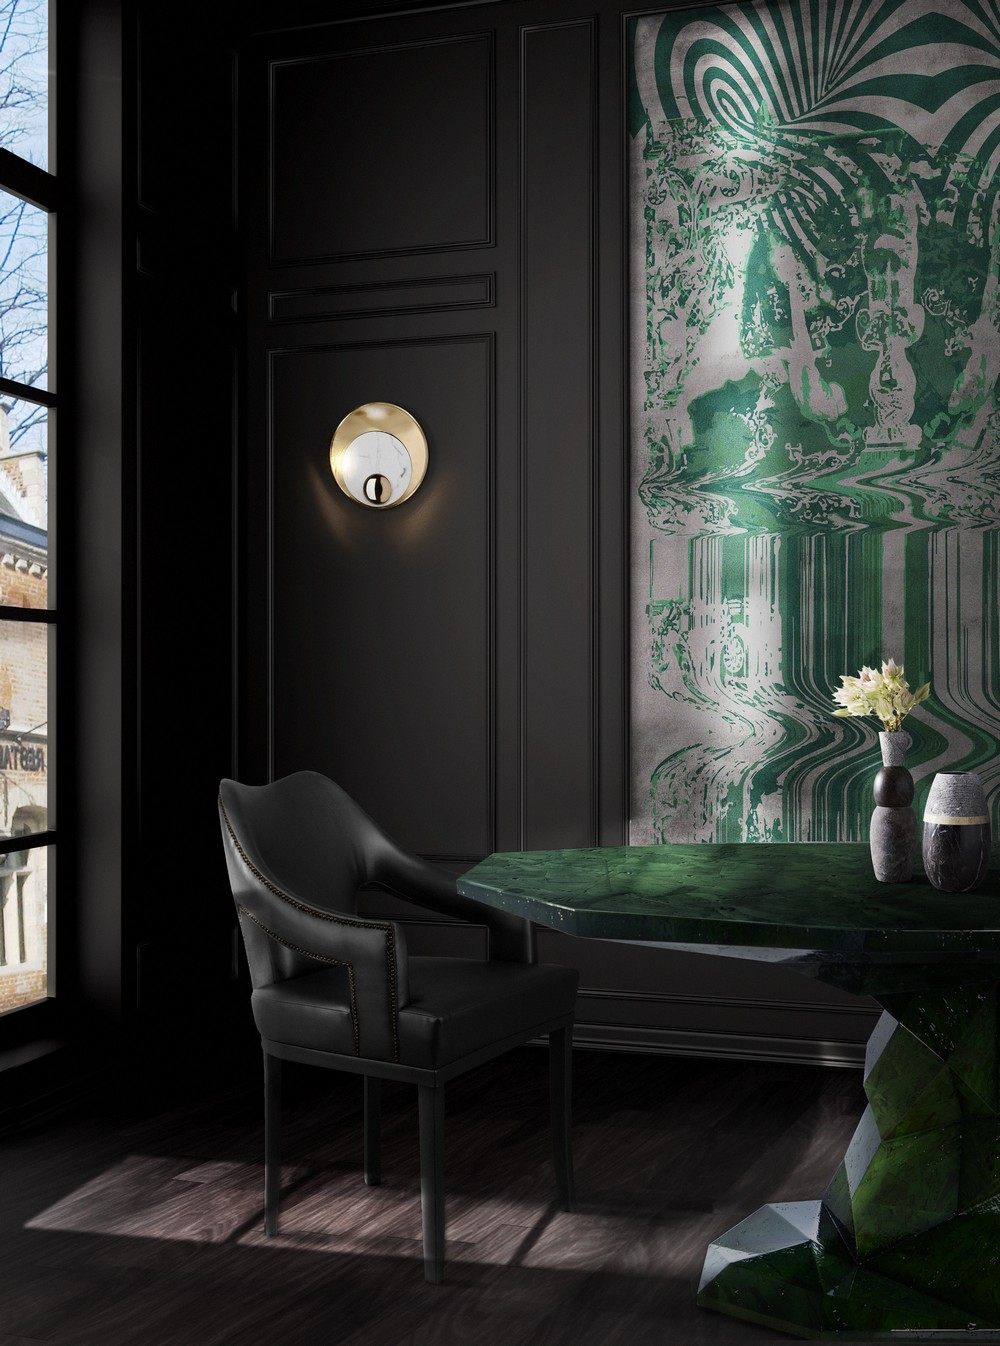 Emerald Green: the perfect color to bring more glamour to your home emerald green Emerald Green: the perfect color to bring more glamour to your home BL Dining Room mar17 1